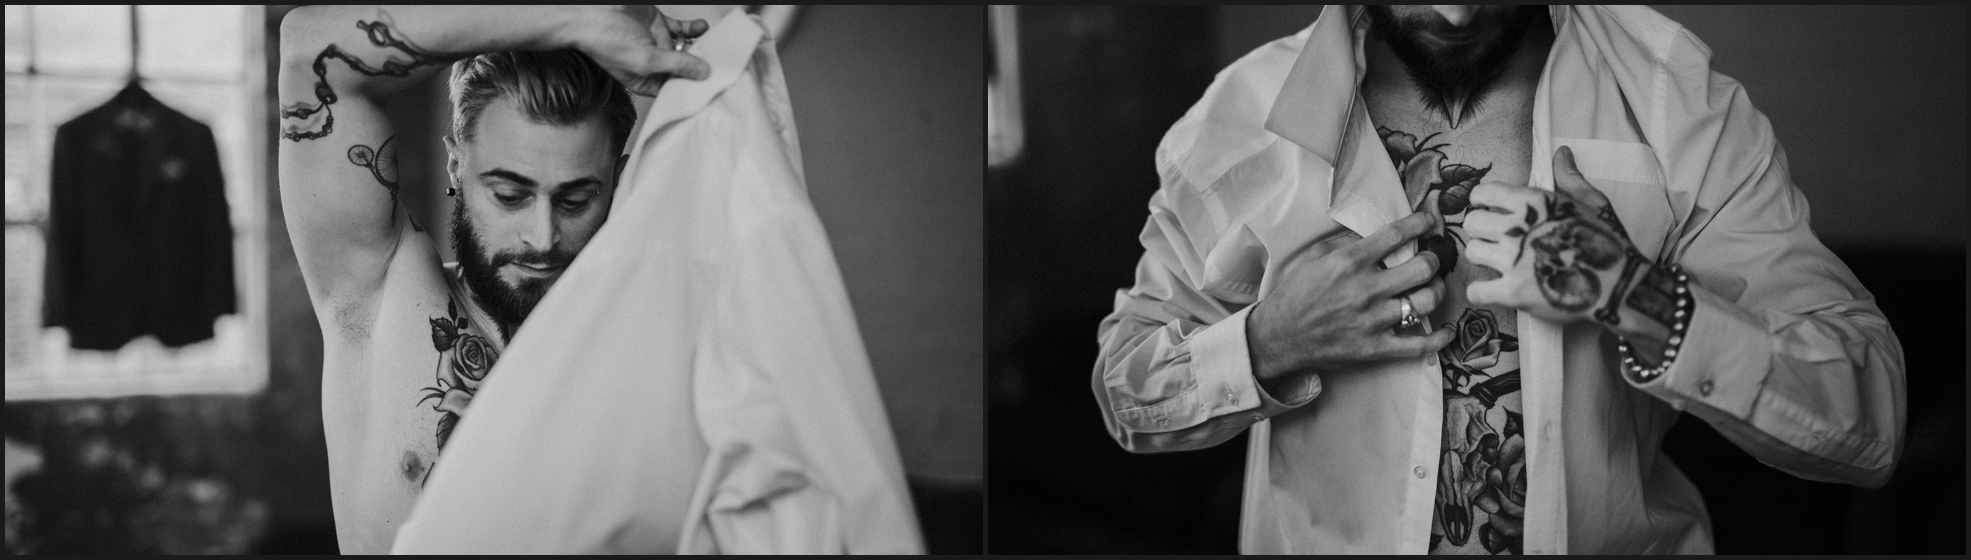 black and white, groom, preparation, tattoos